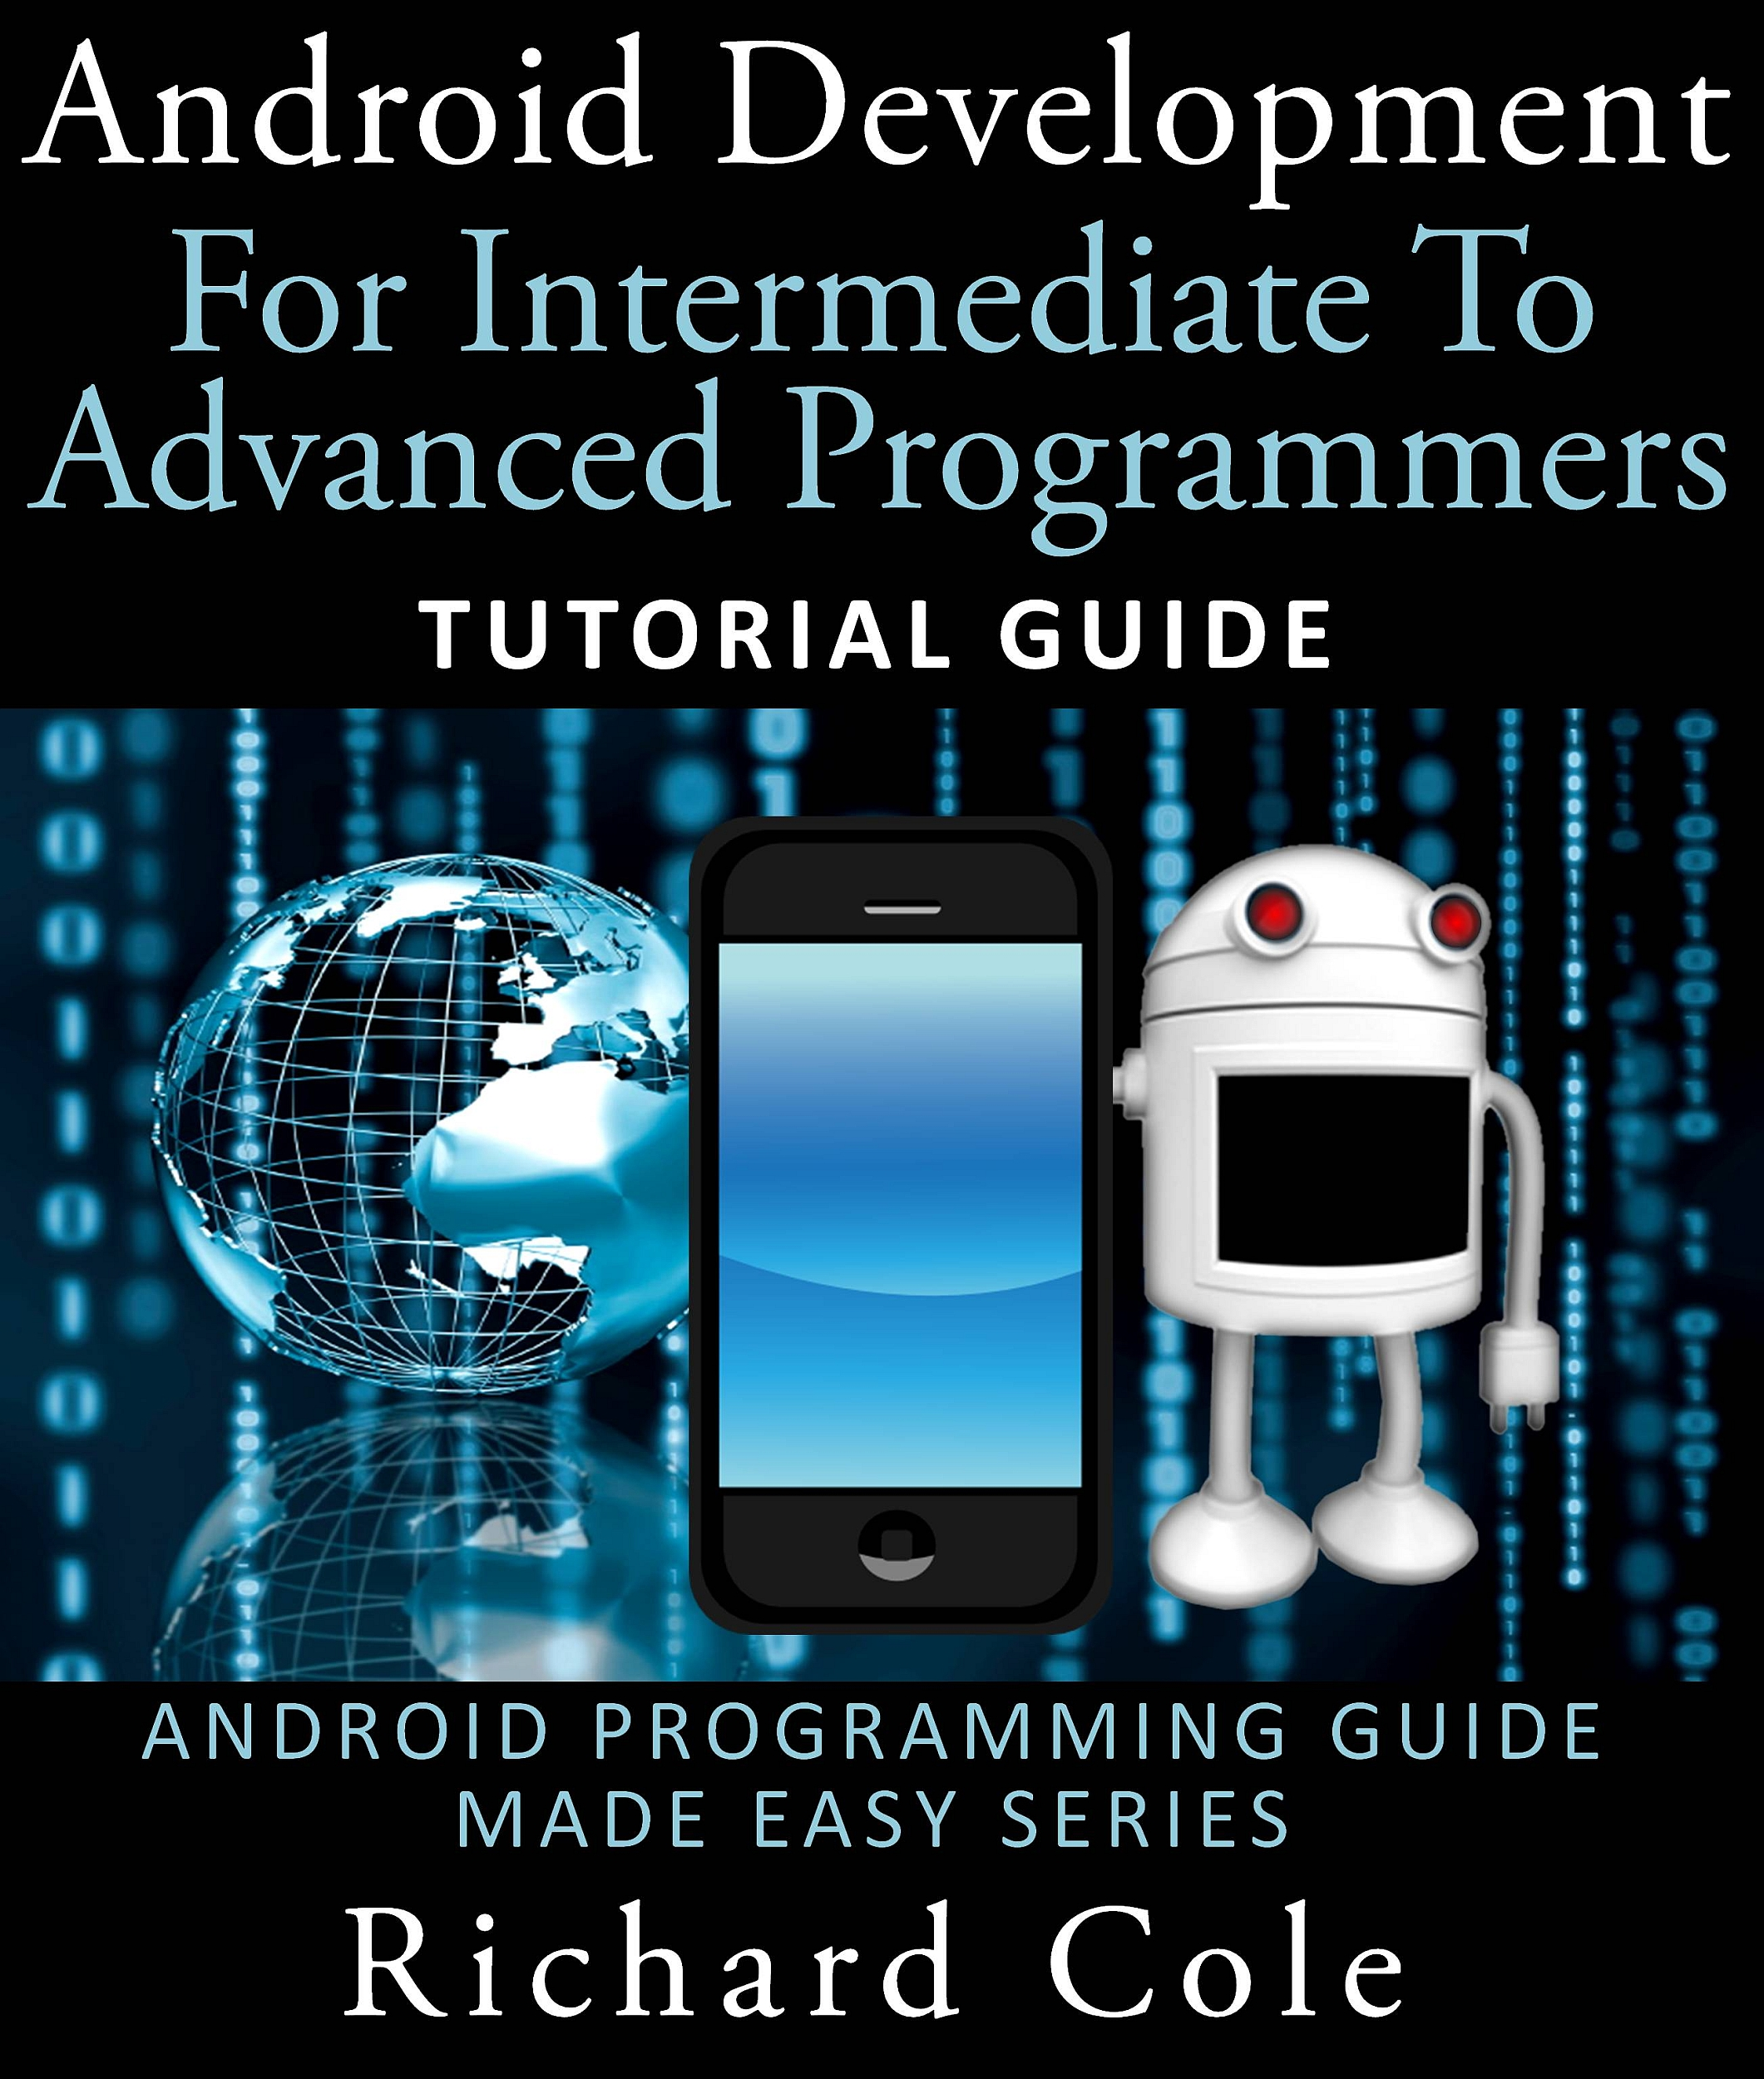 Smashwords android development for intermediate to advanced android development for intermediate to advanced programmers tutorial guide android programming guide made easy series baditri Images